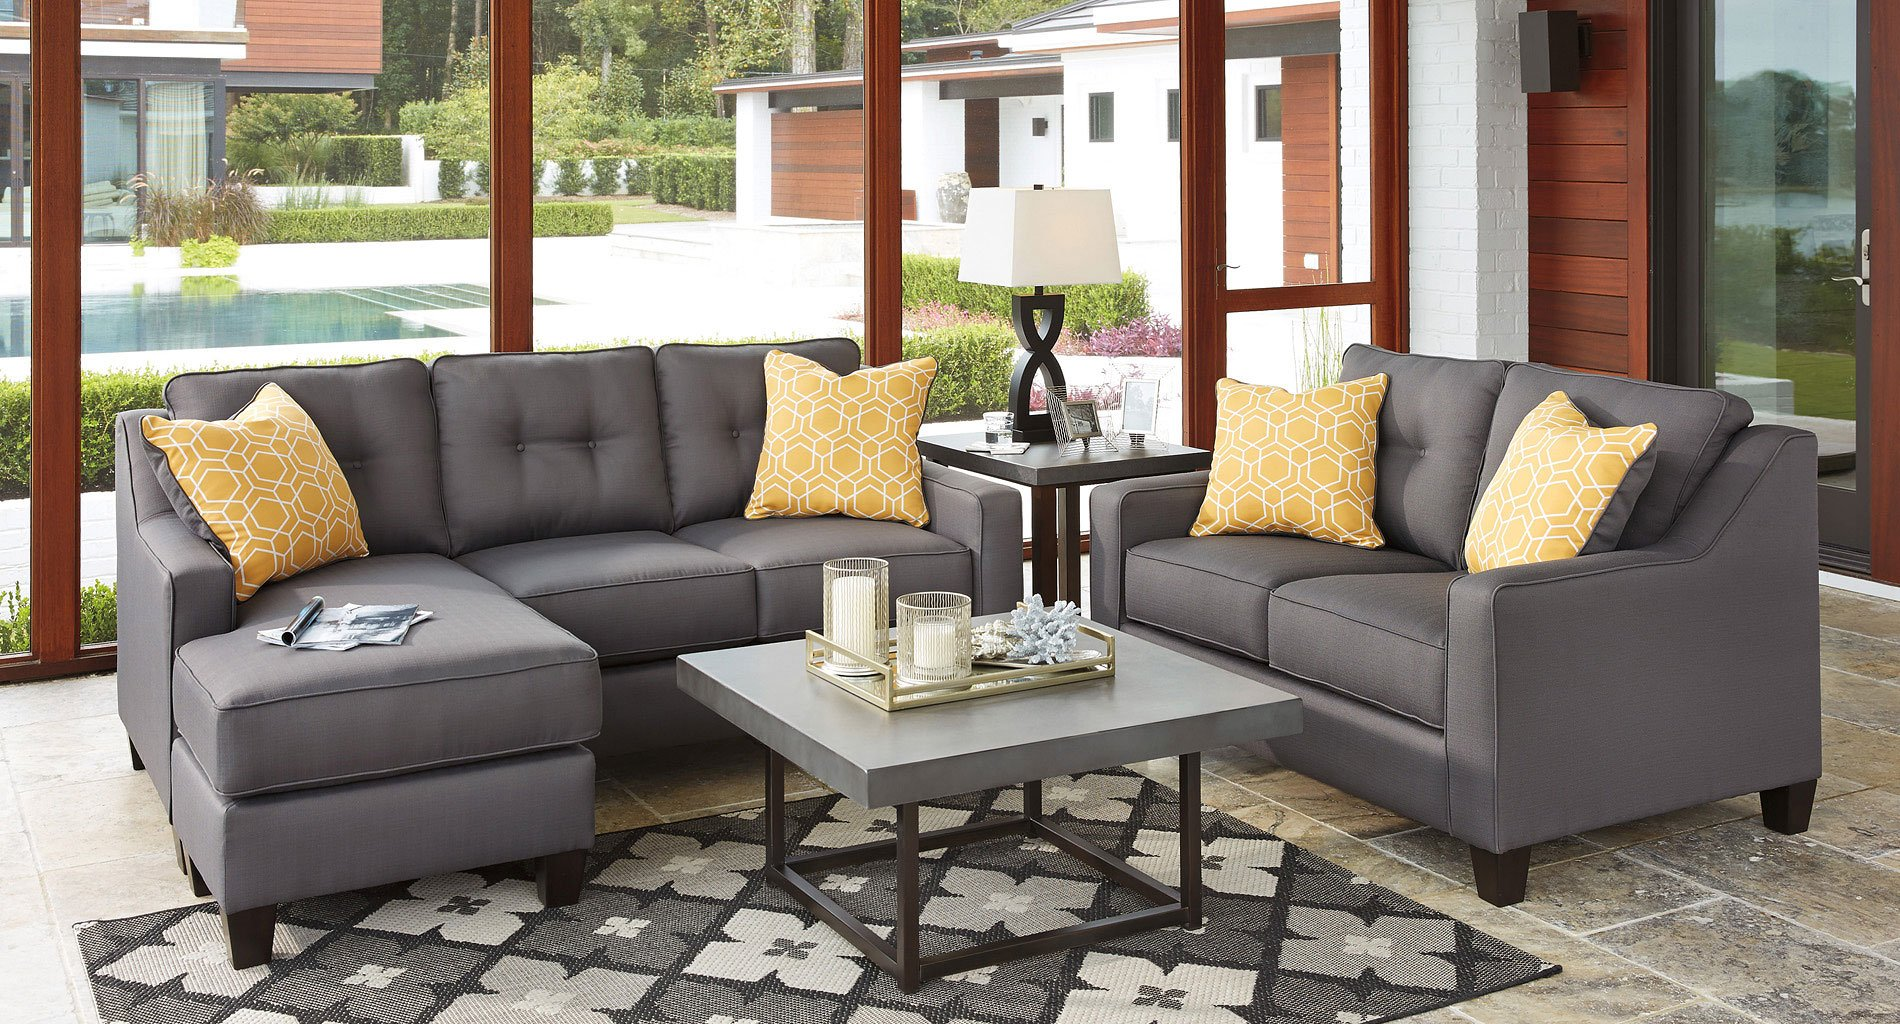 Aldie Nuvella Gray Living Room Set By Benchcraft 1 Review